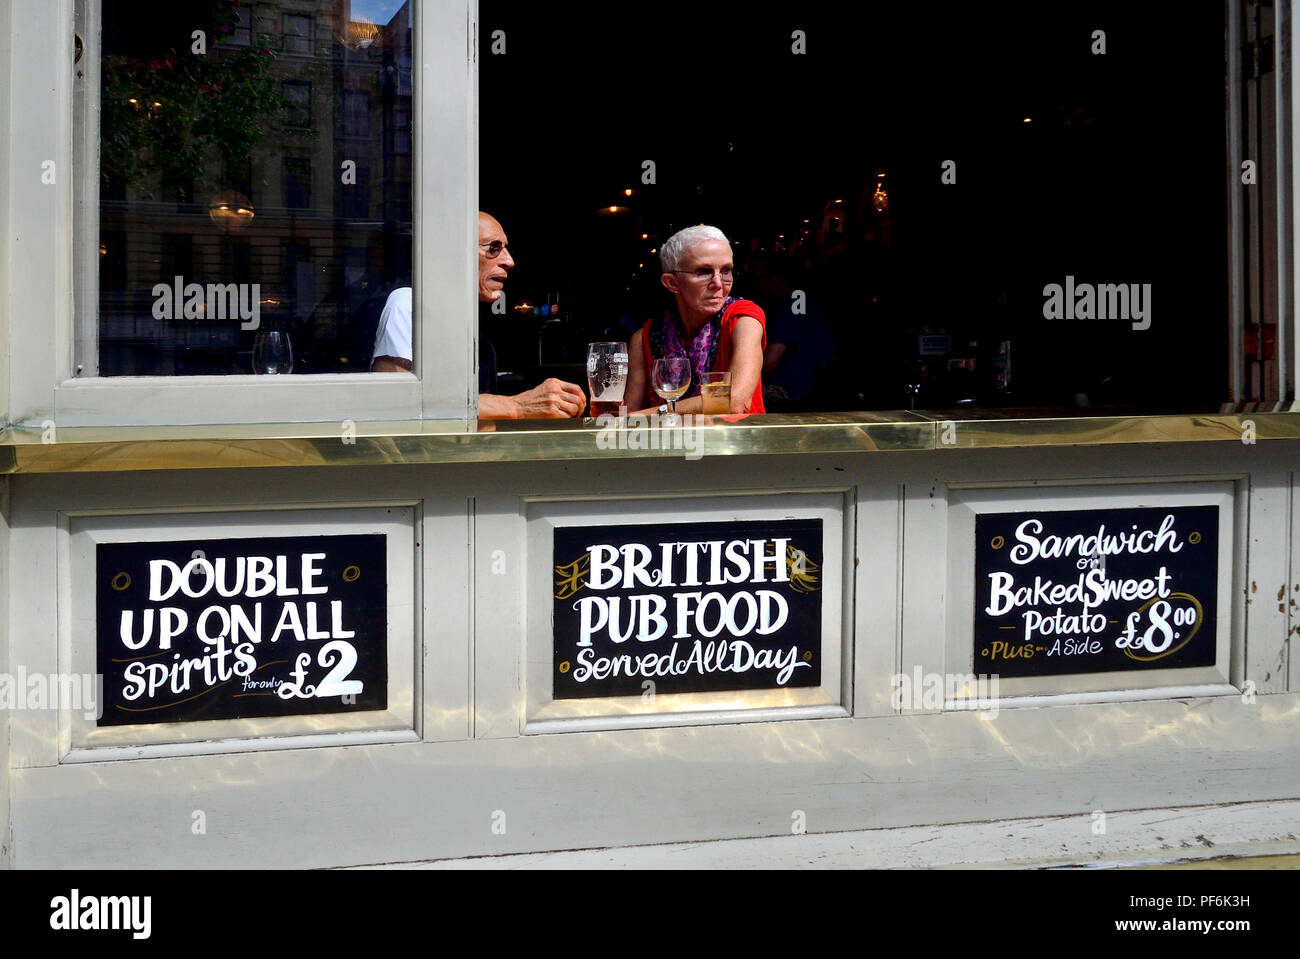 People at the open window of The Garrick Arms pub in Charing Cross Road, London, England, UK. - Stock Image